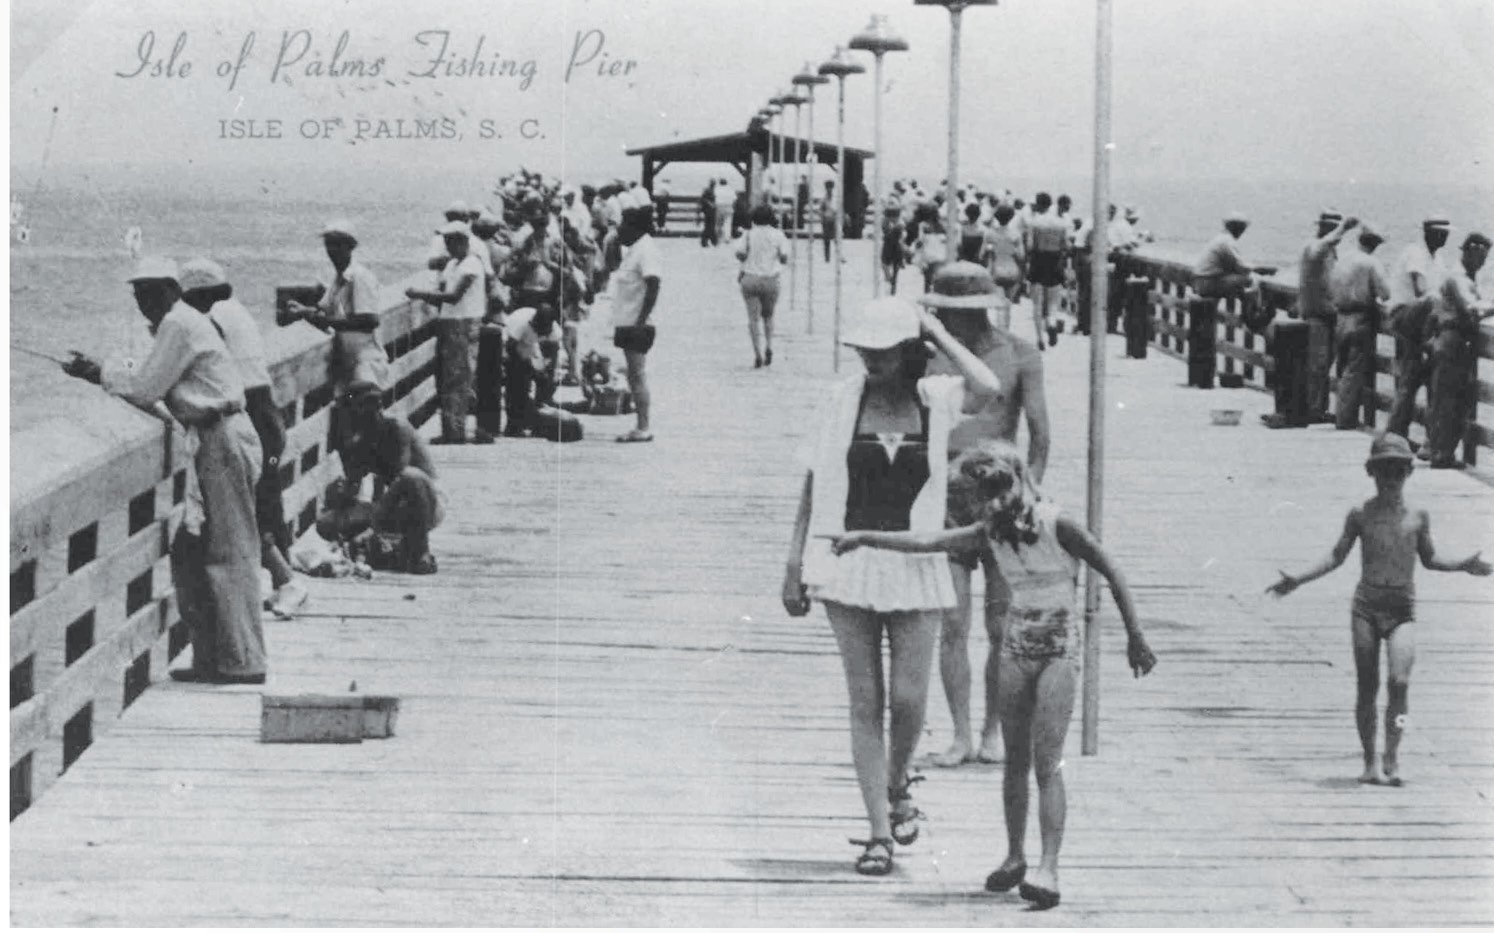 The fishing pier, circa 1940